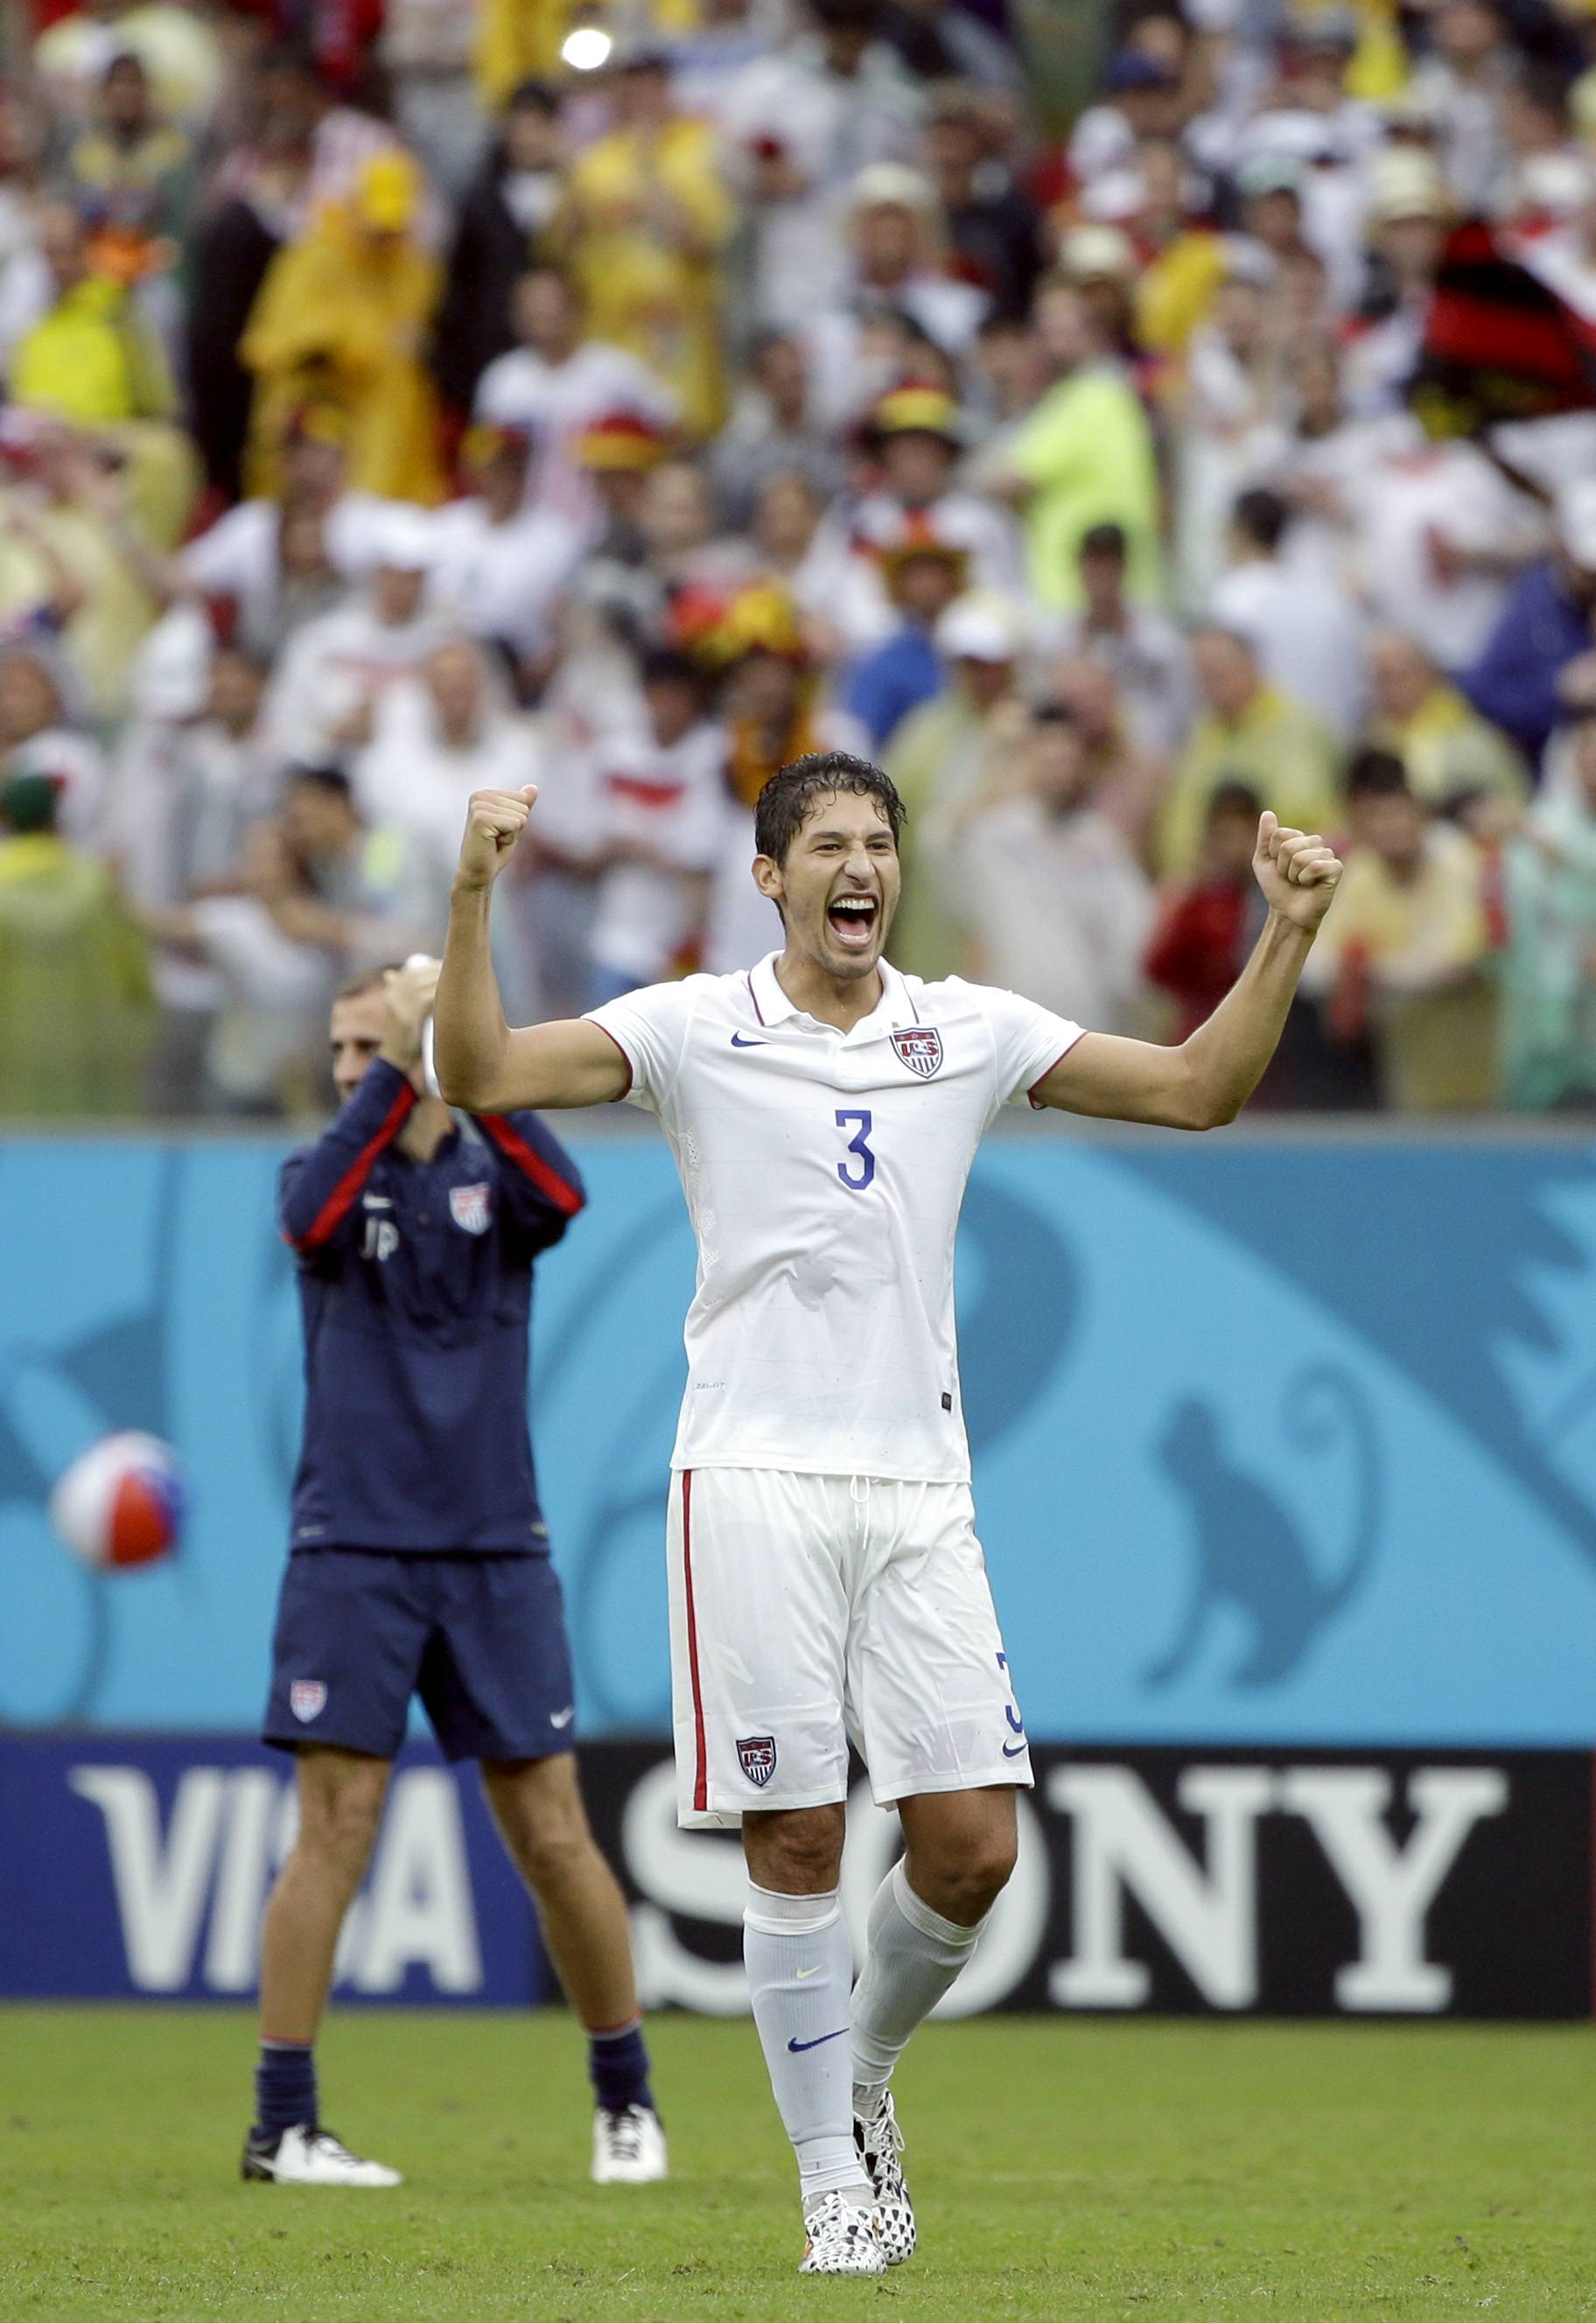 U.S. advances in World Cup; faces Belgium Tuesday